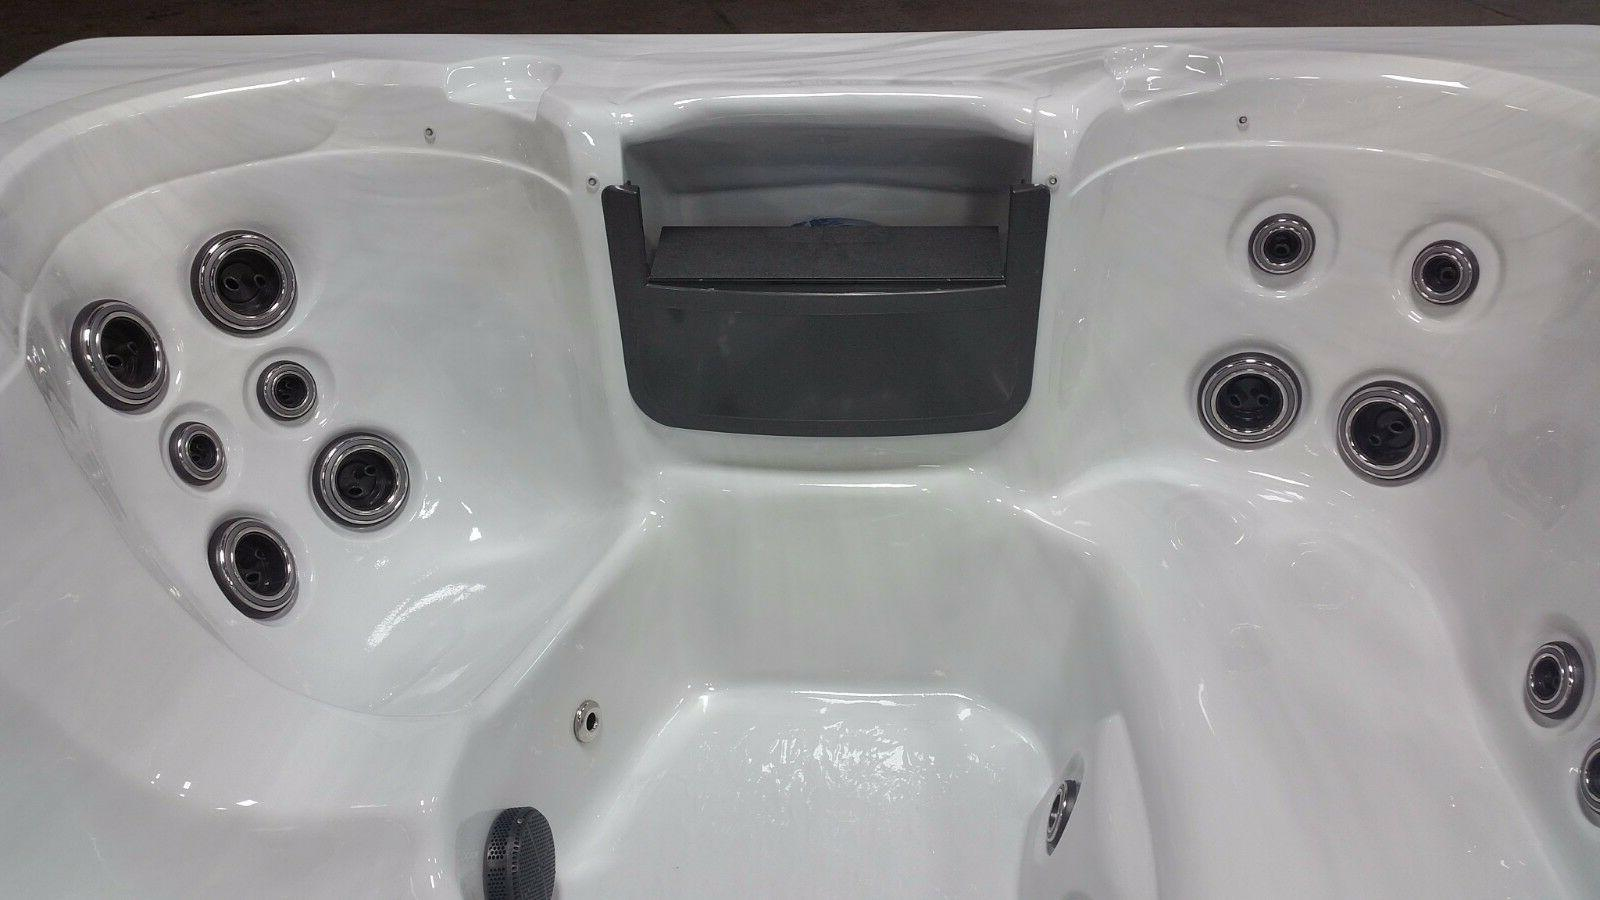 5 Person Whirlpool Spa Tub 23 Waterfall and LED Perimeter